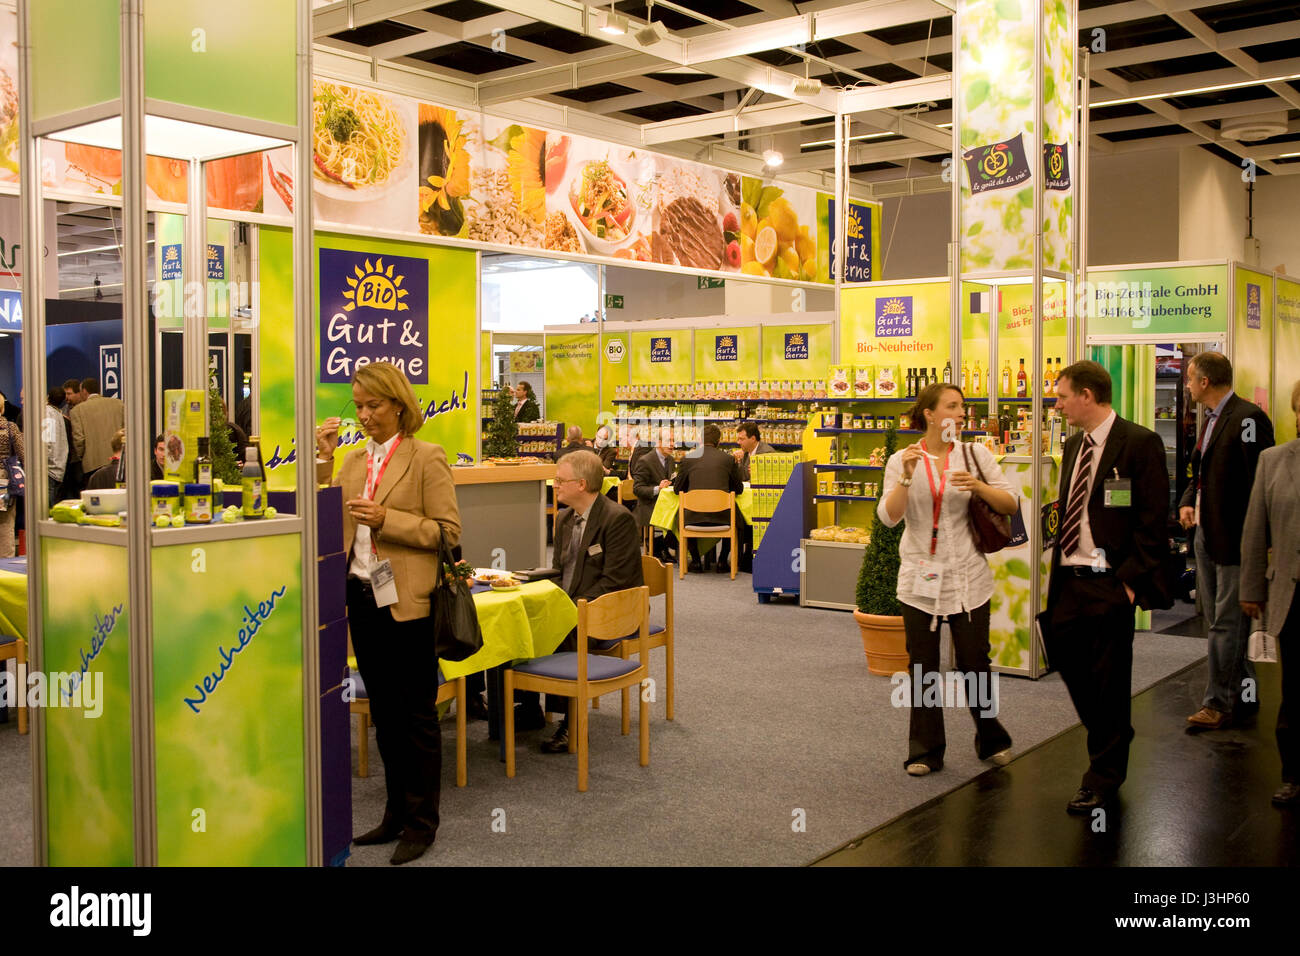 Germany, Cologne, the ANUGA food and beverages trade fair at the exhibition center in the district Deutz, stall - Stock Image